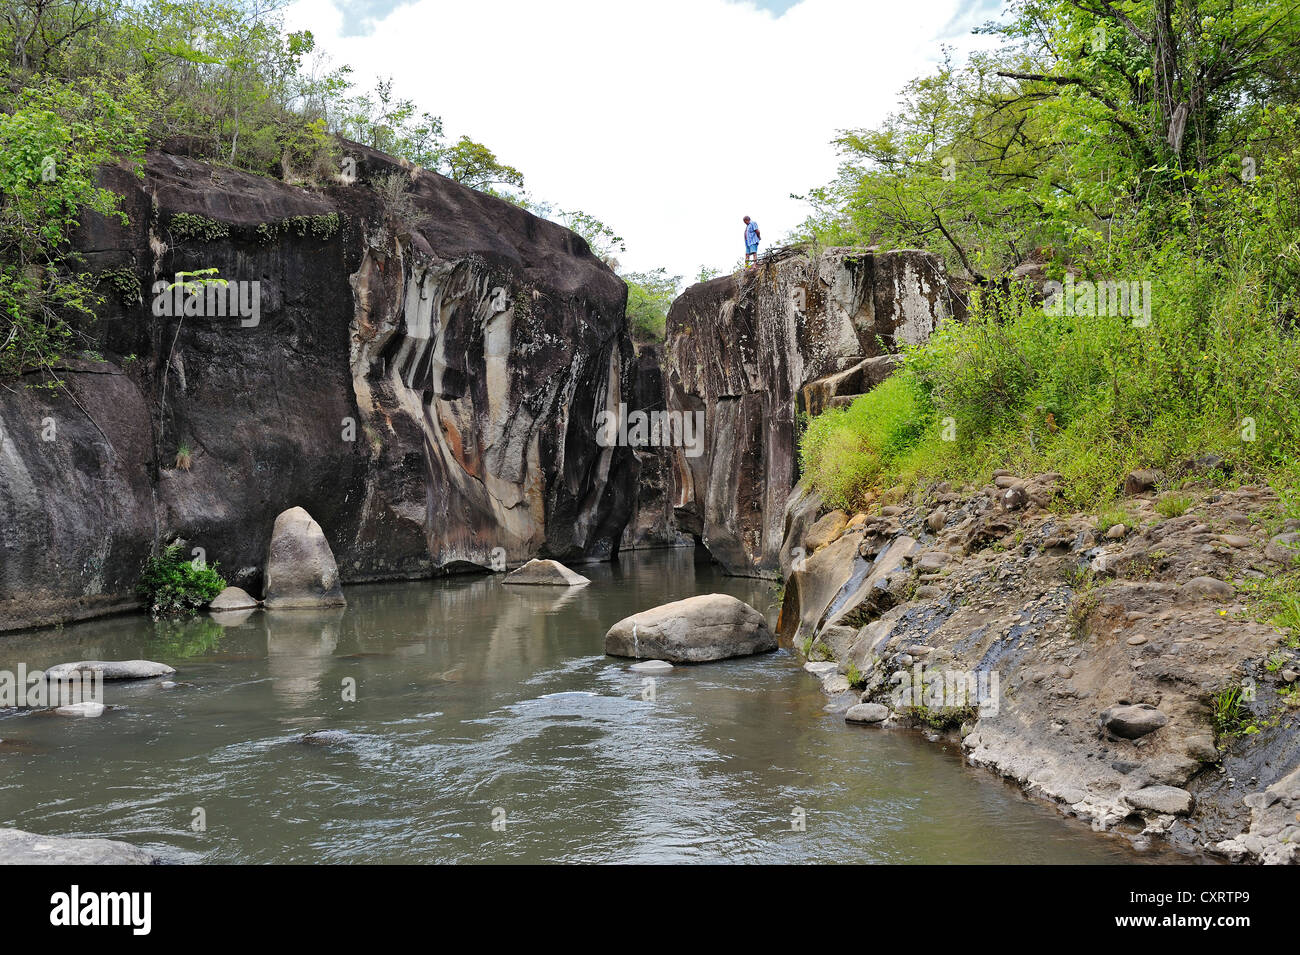 Tourists at a gorge with a river near Liberia, Guanacaste province, Costa Rica, Central America - Stock Image